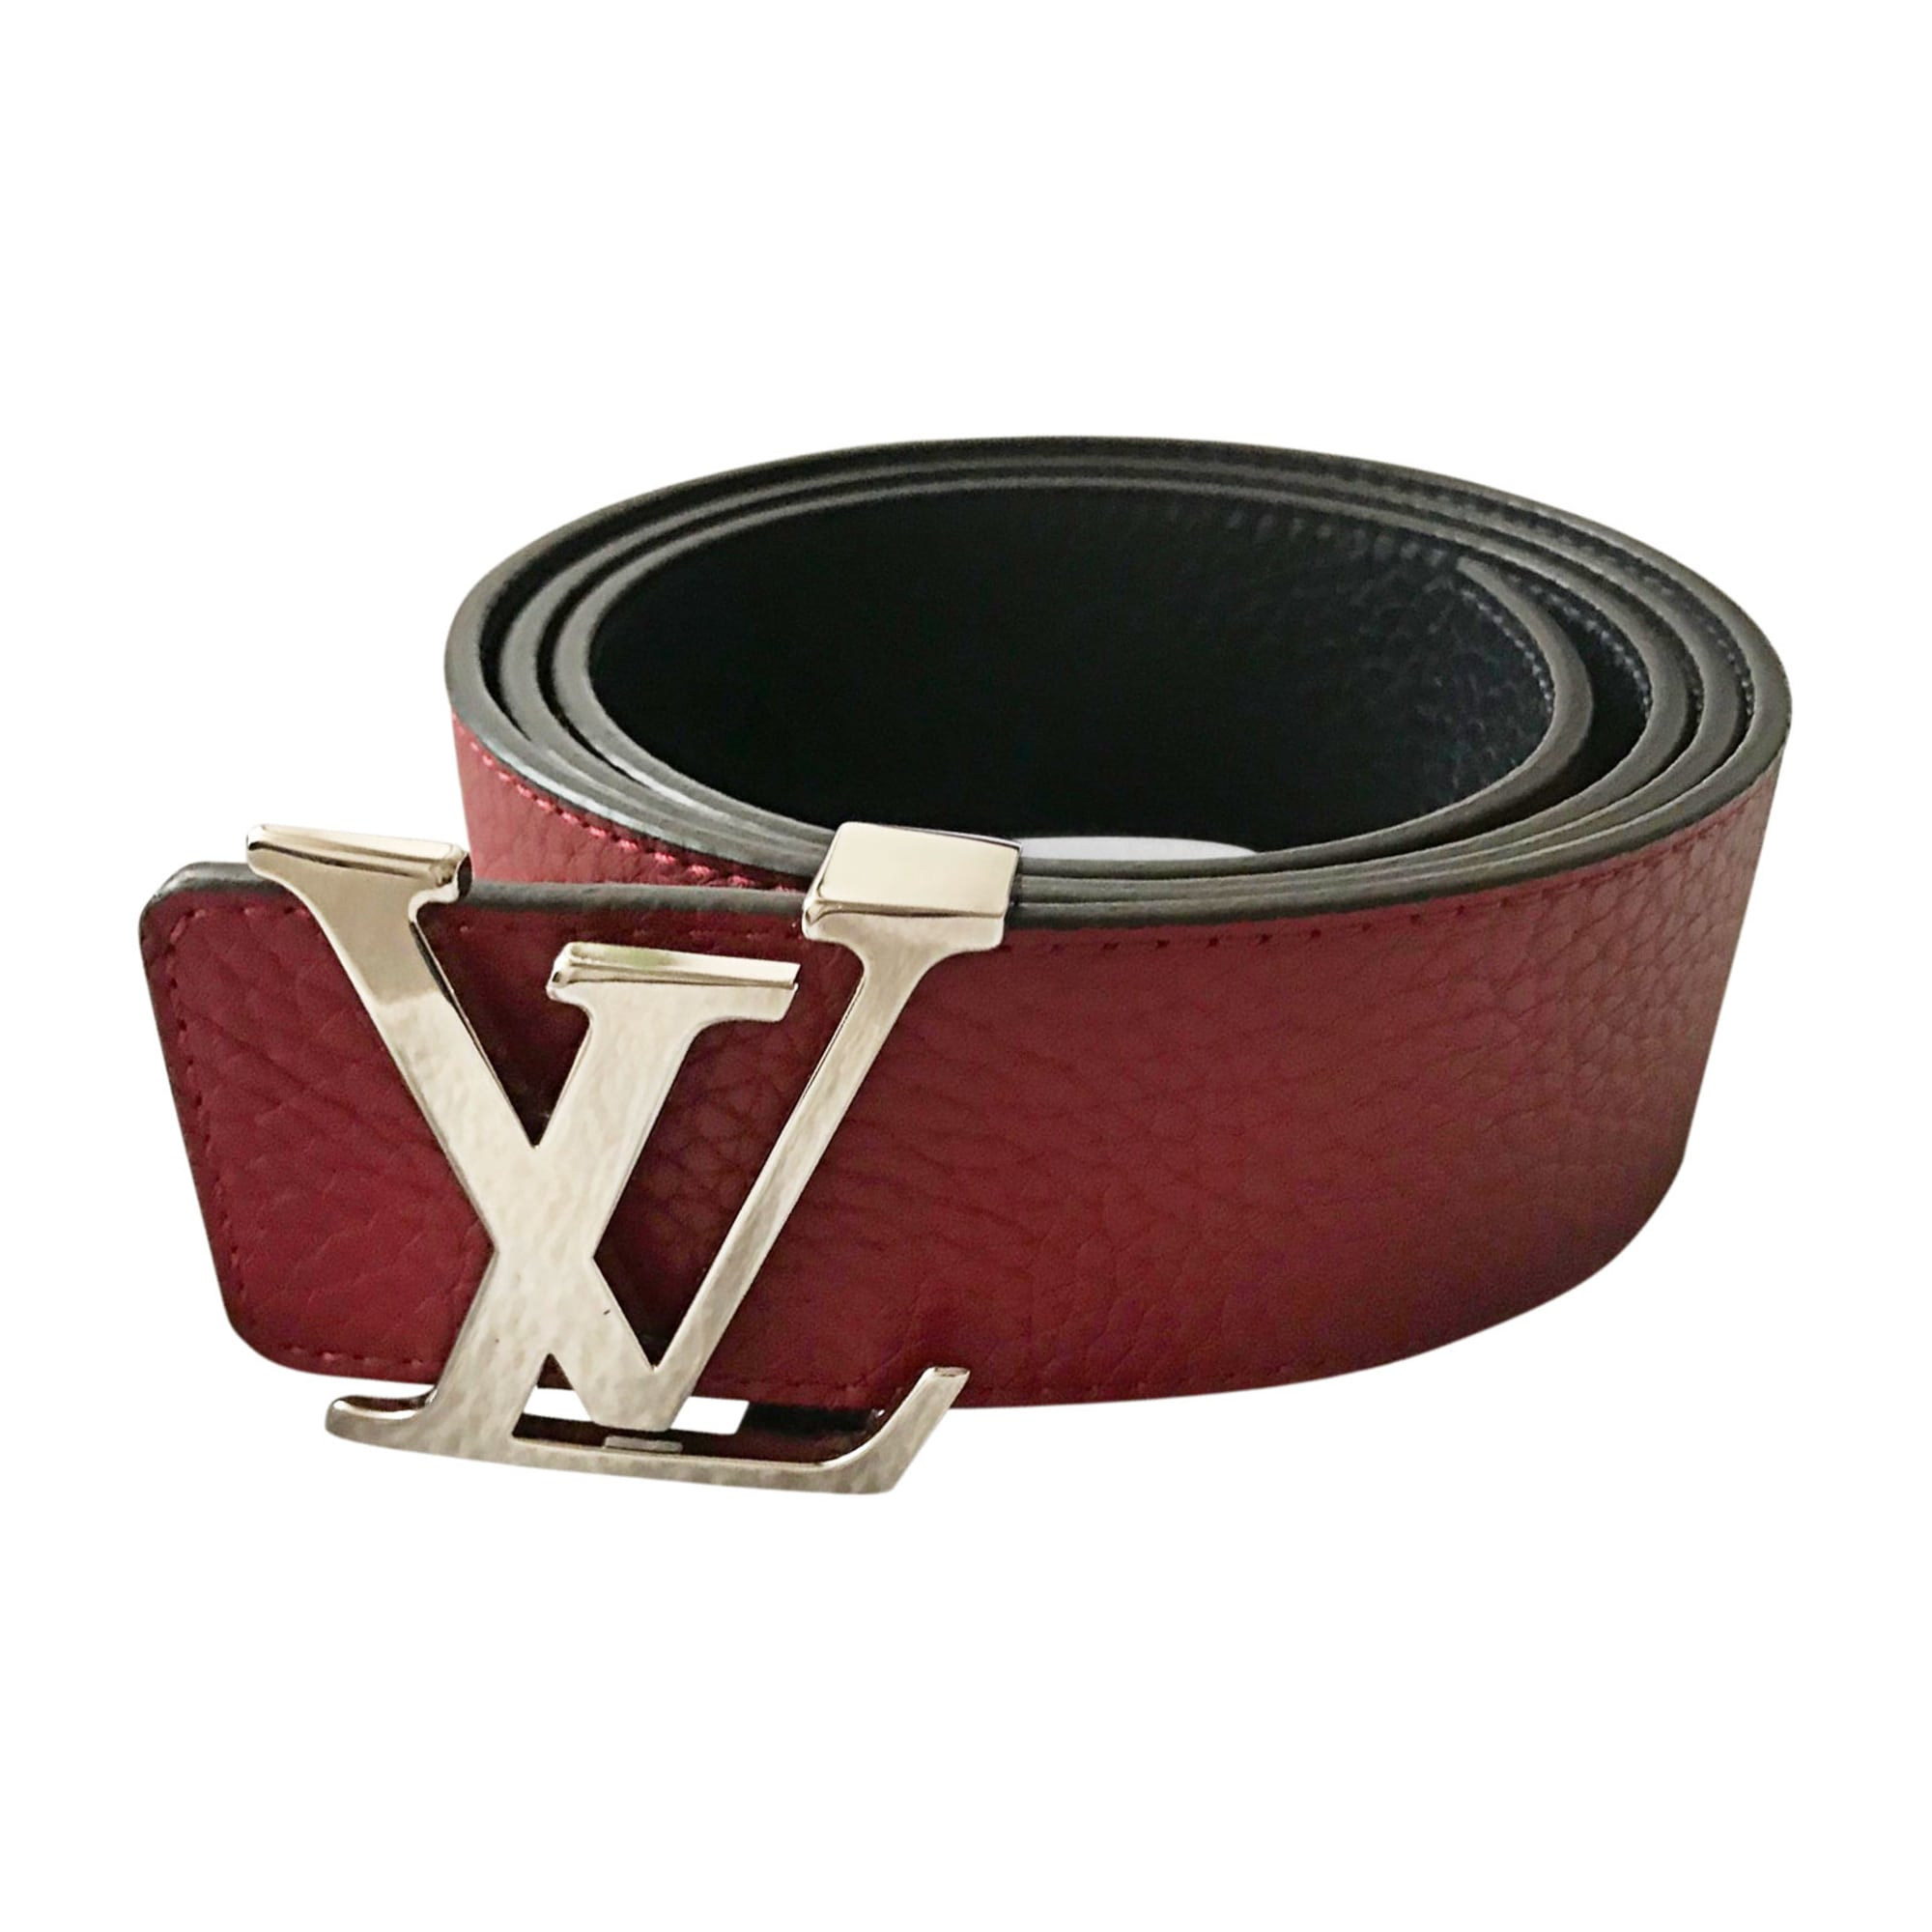 Belt LOUIS VUITTON navy/bordeaux